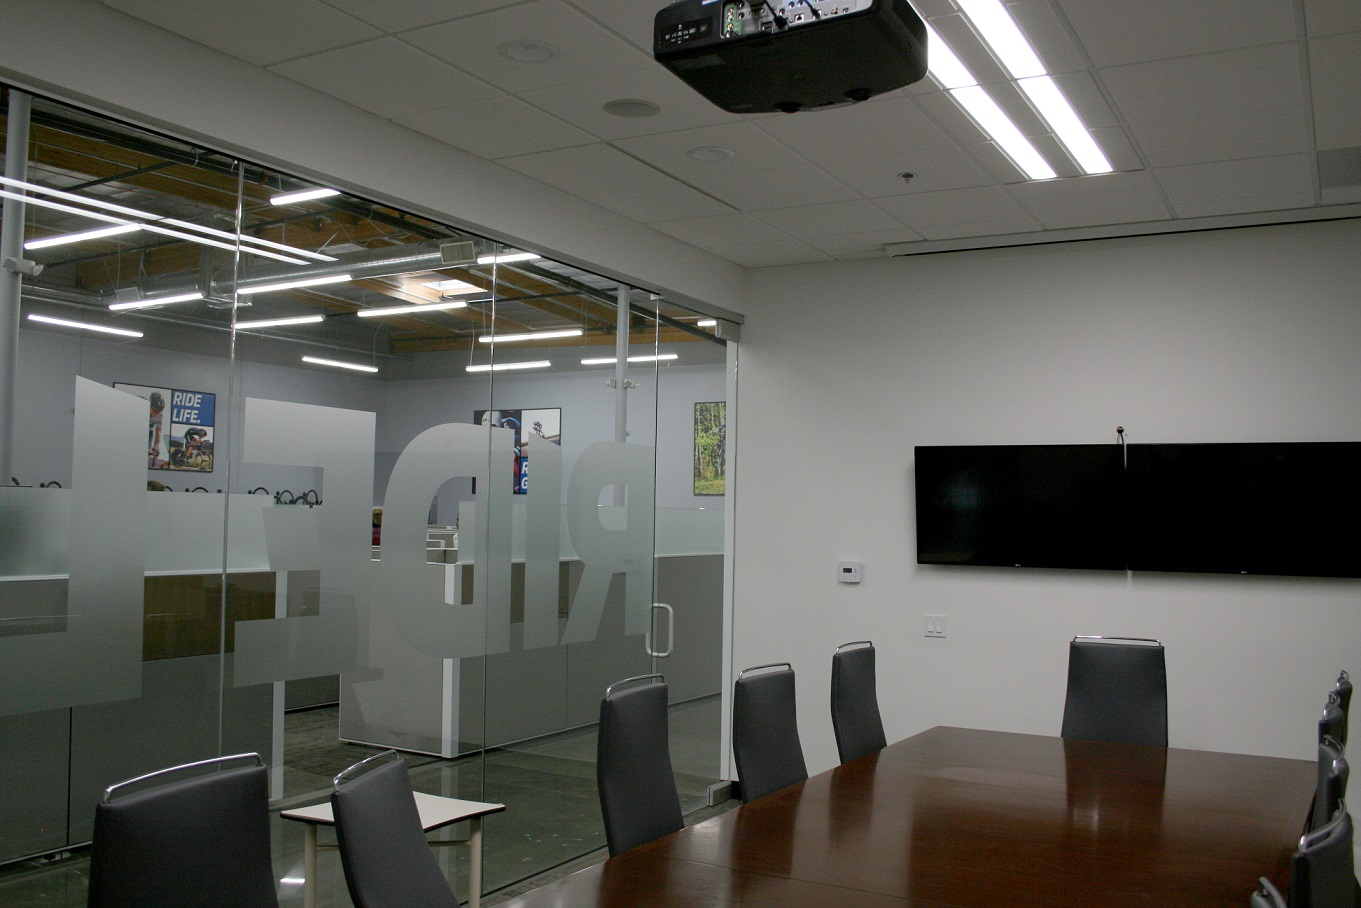 GIANT BICYCLES - OFFICE TENANT IMPROVEMENT